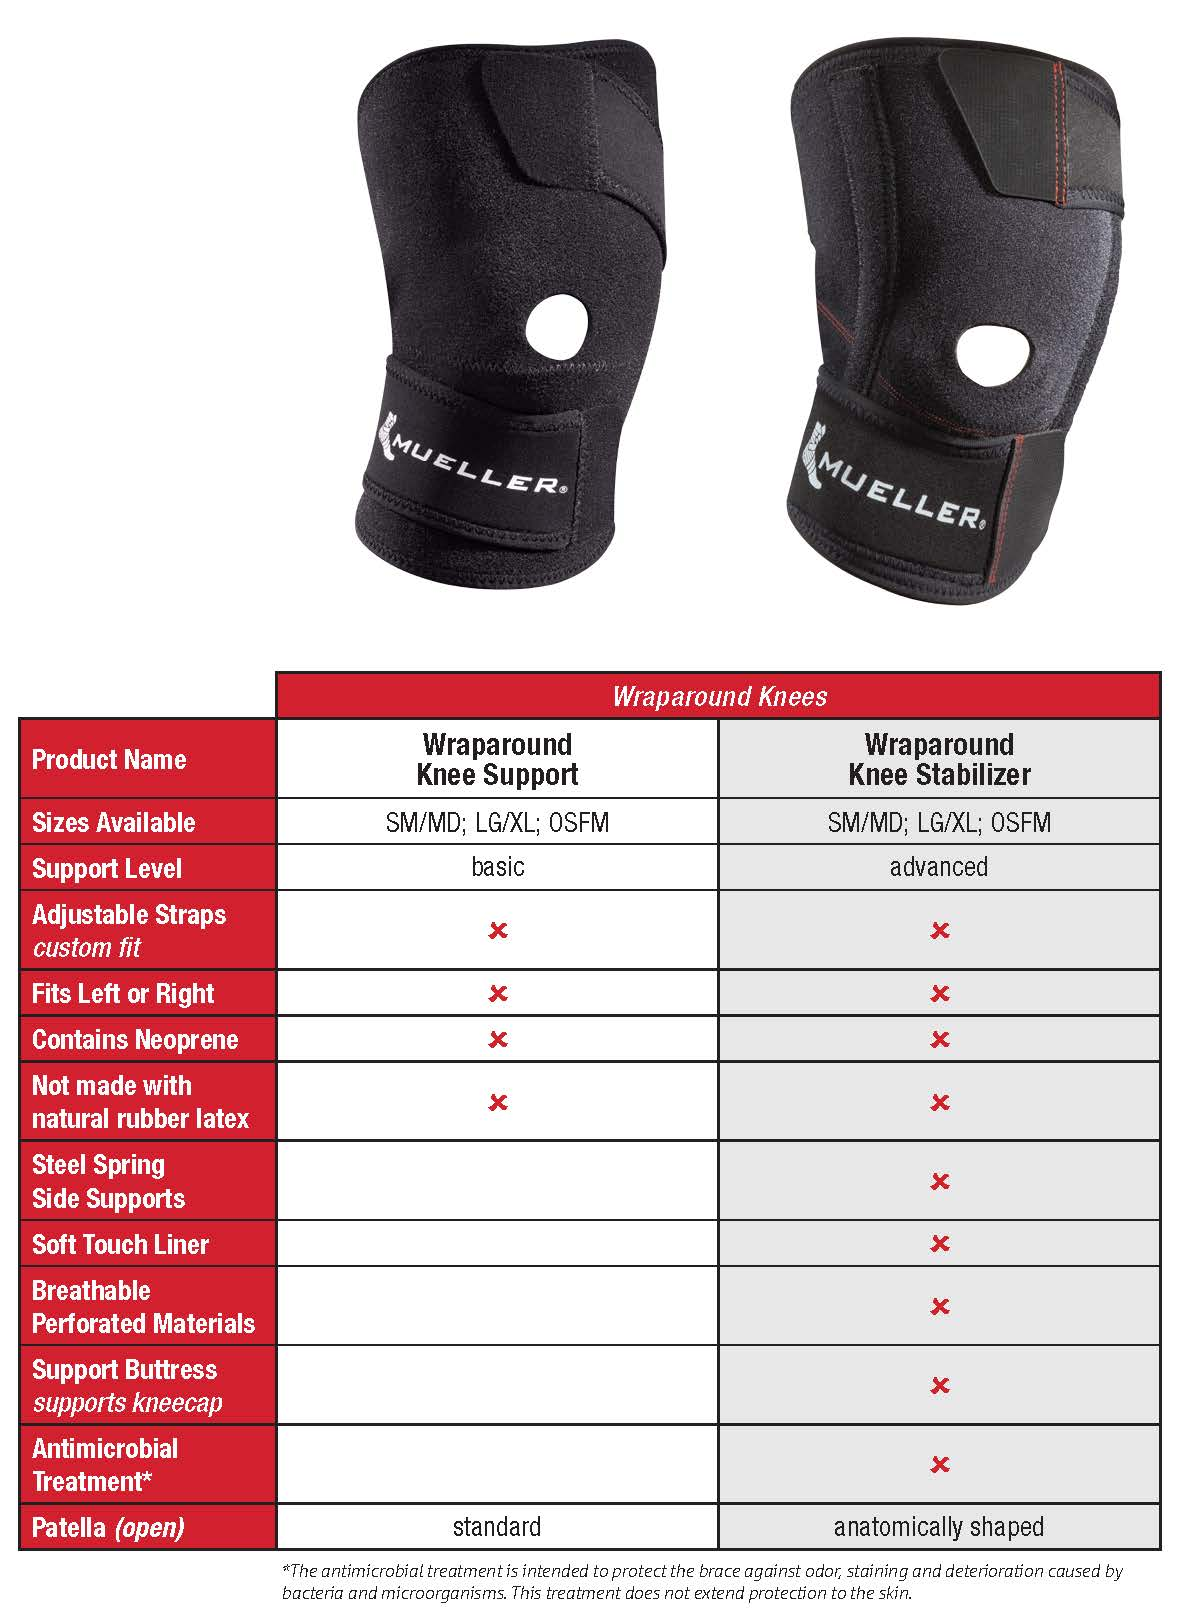 Wraparound Knee Support Comparison Chart